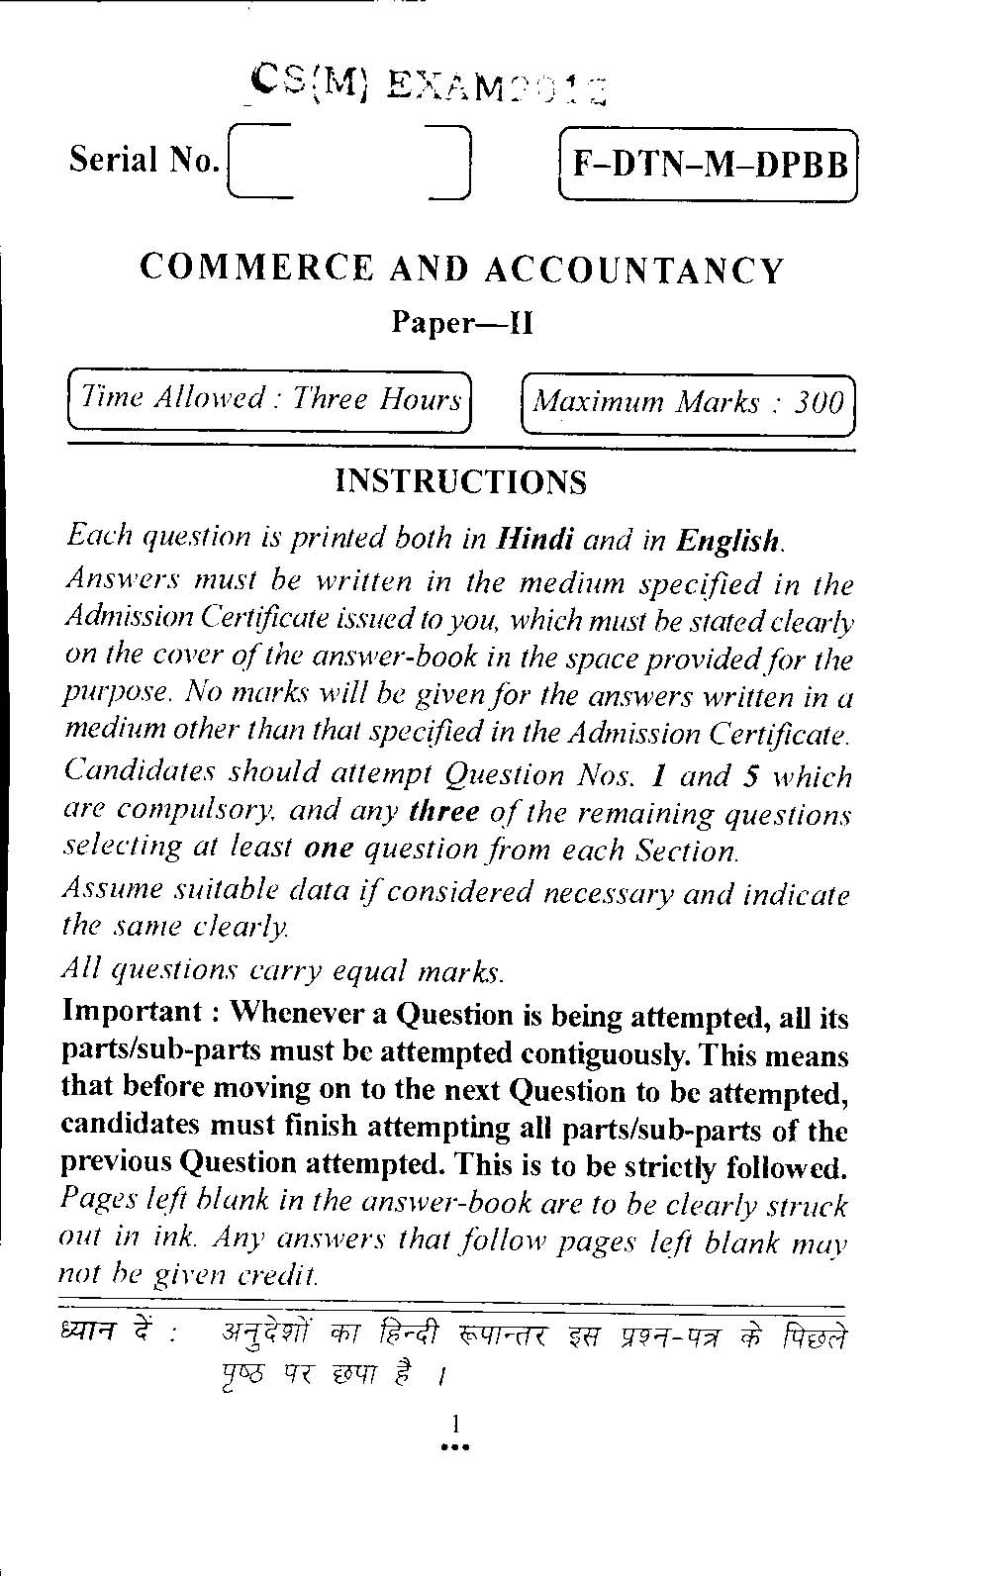 012 American Essay Civil Services Examination Commerce And Accountancy Paper Ii Previous Years Que Striking Format Literature Topics Identity Titles Full